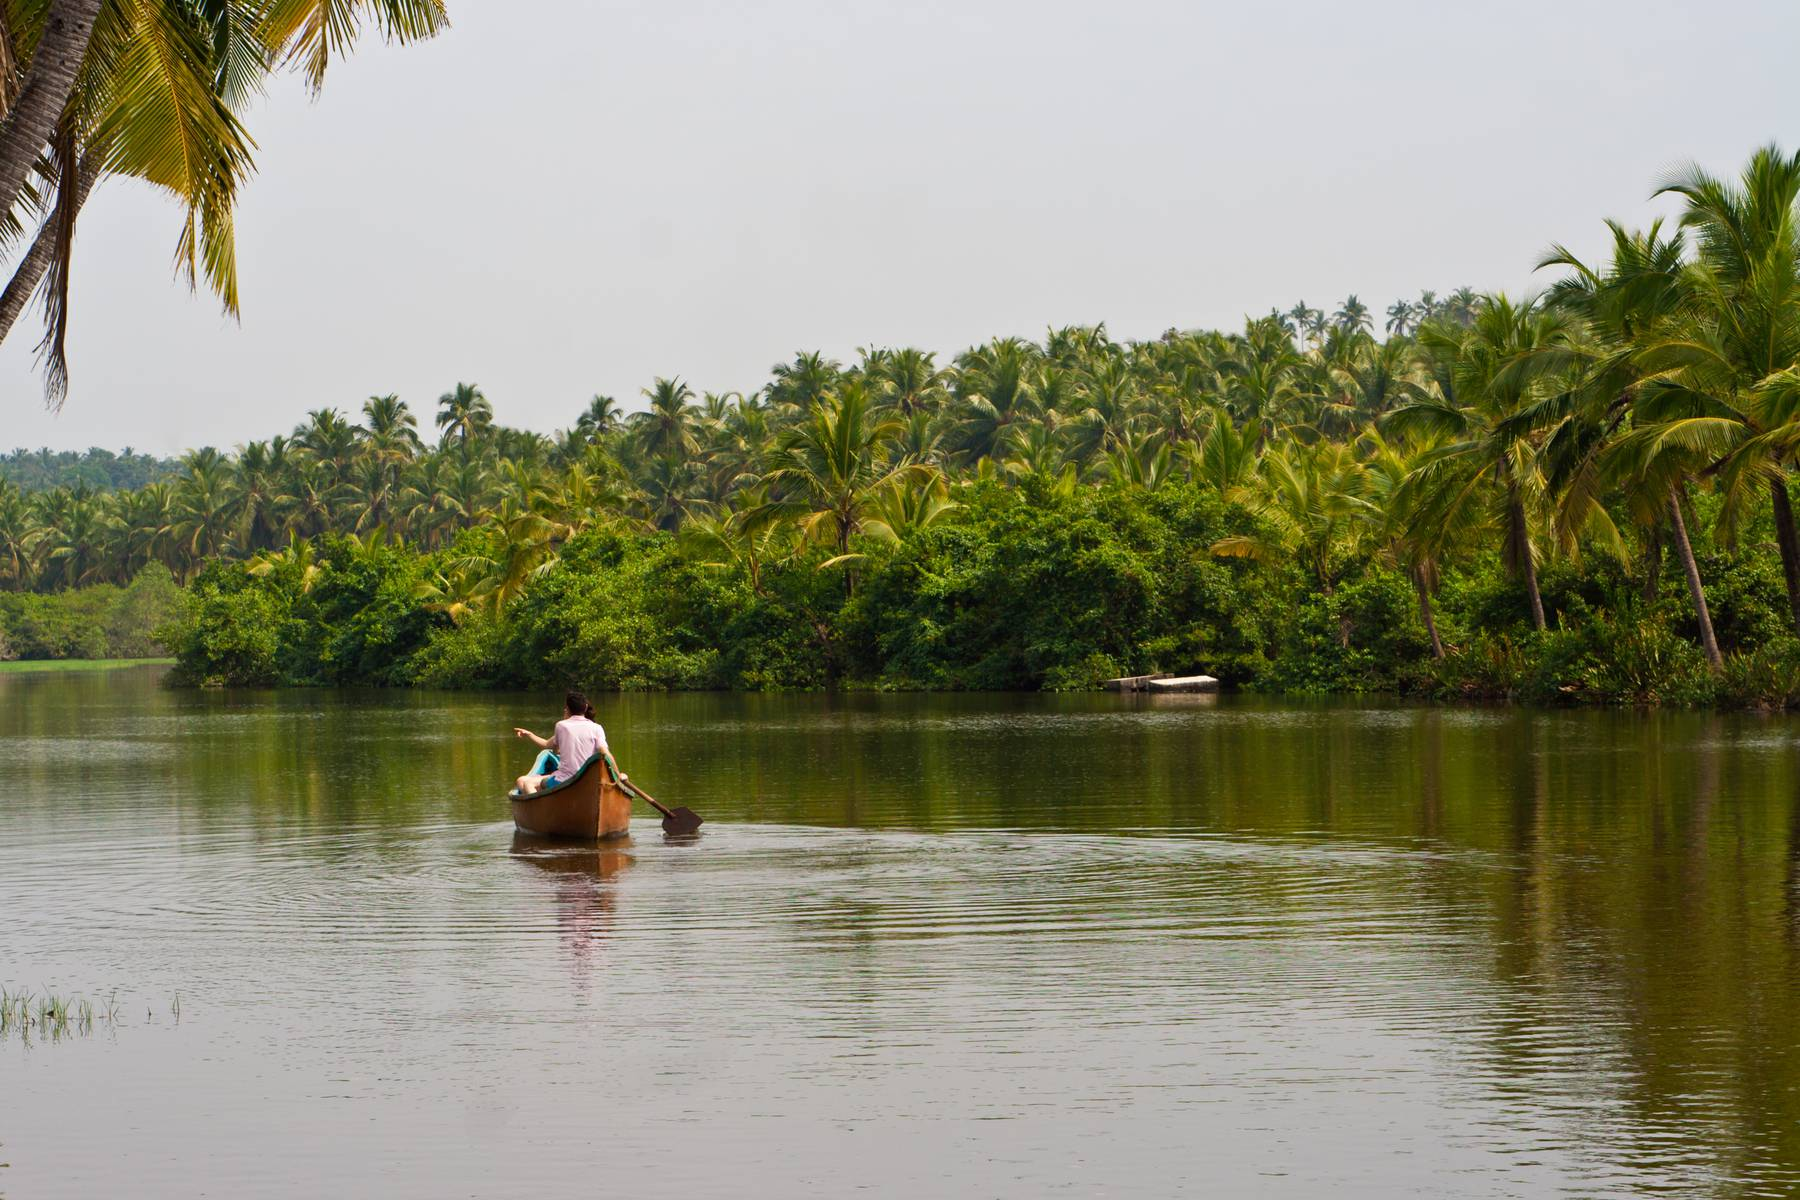 Ensam kanot i backwaters